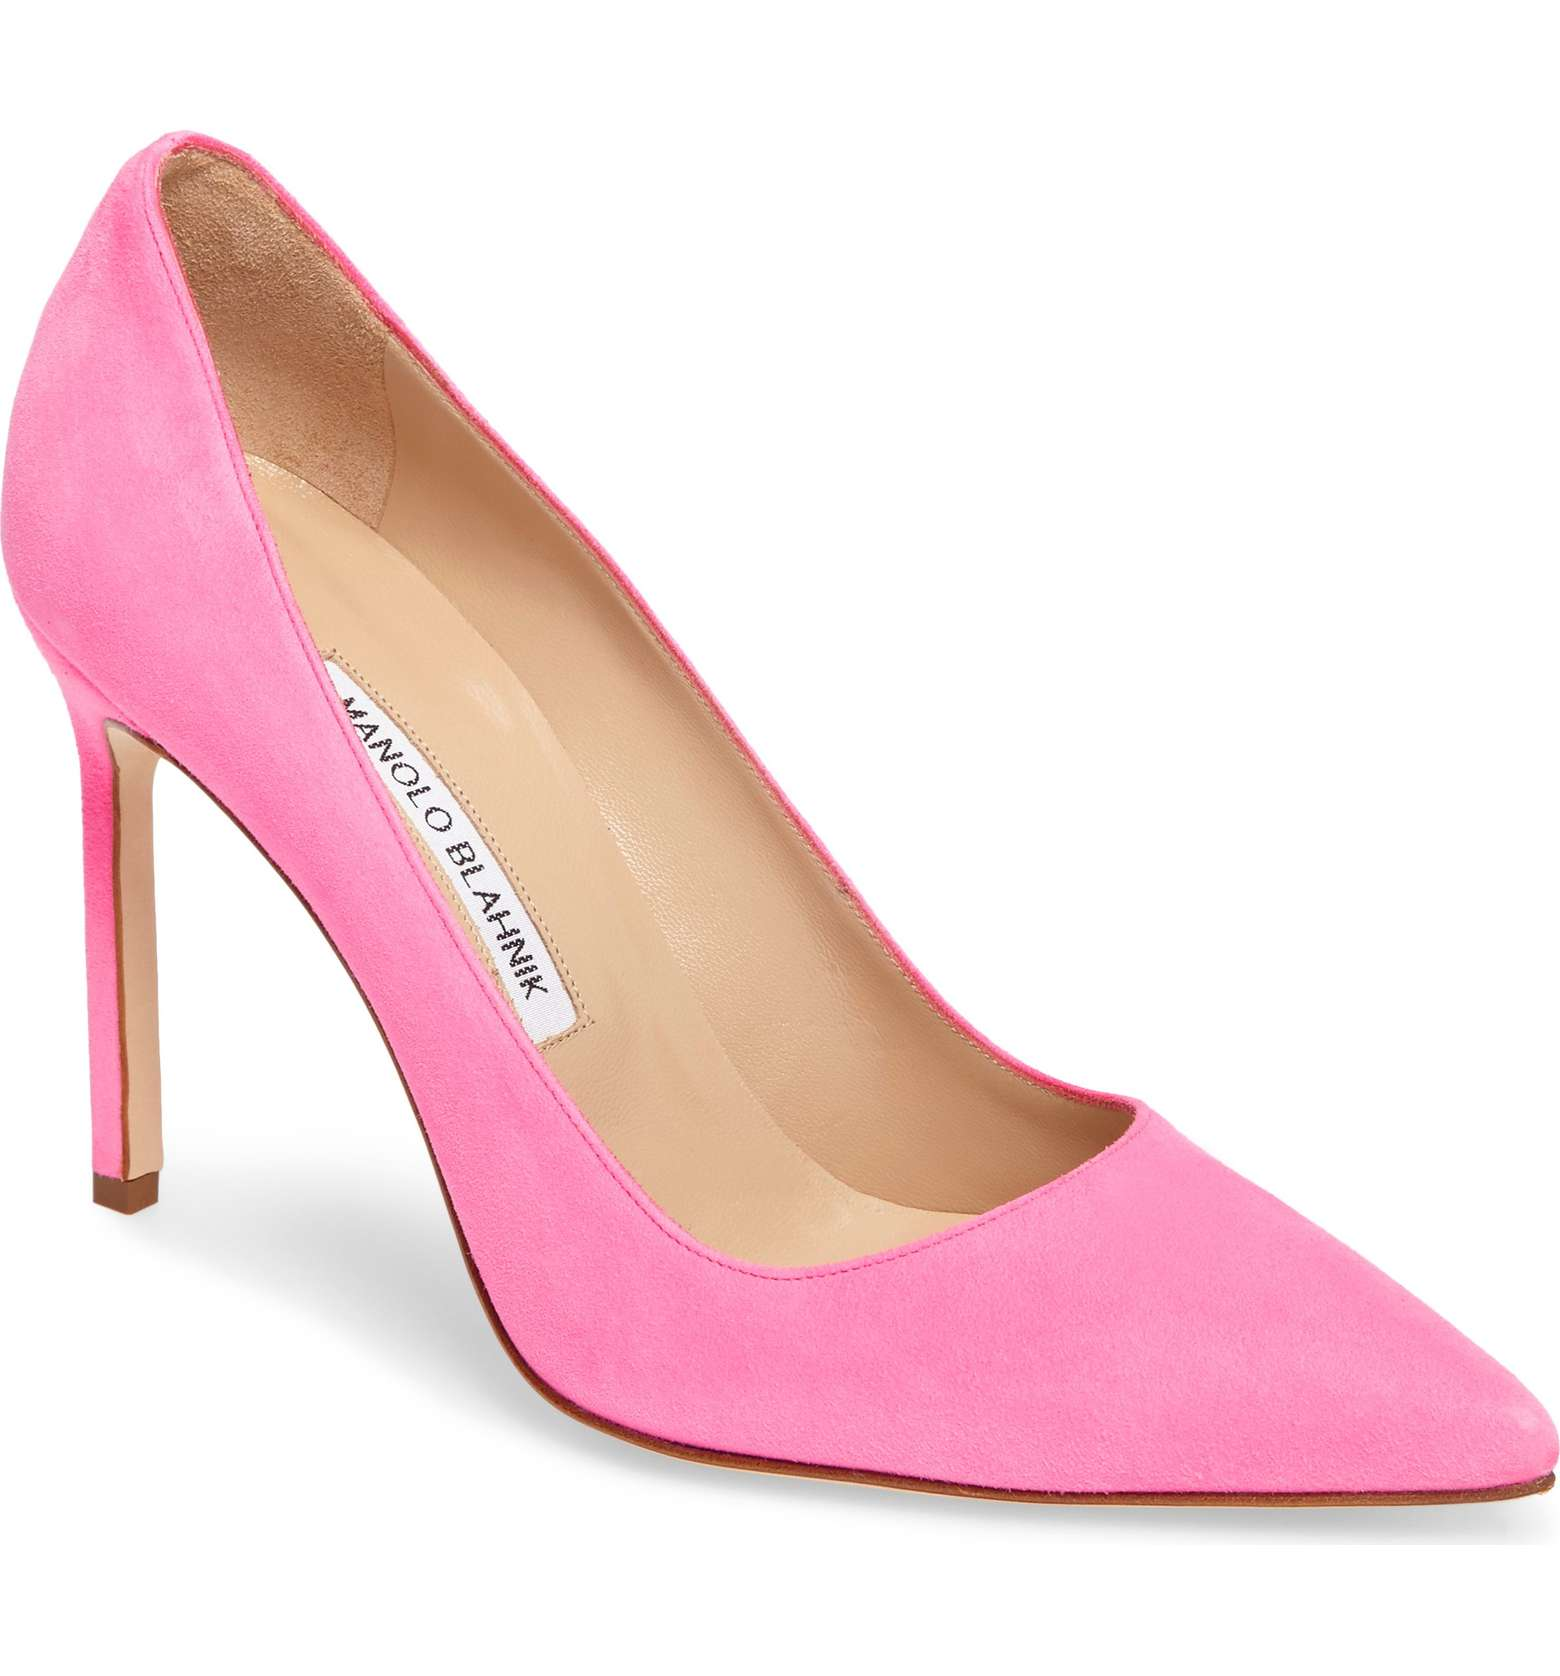 Manolo Blahnik BB Pumps in Pink